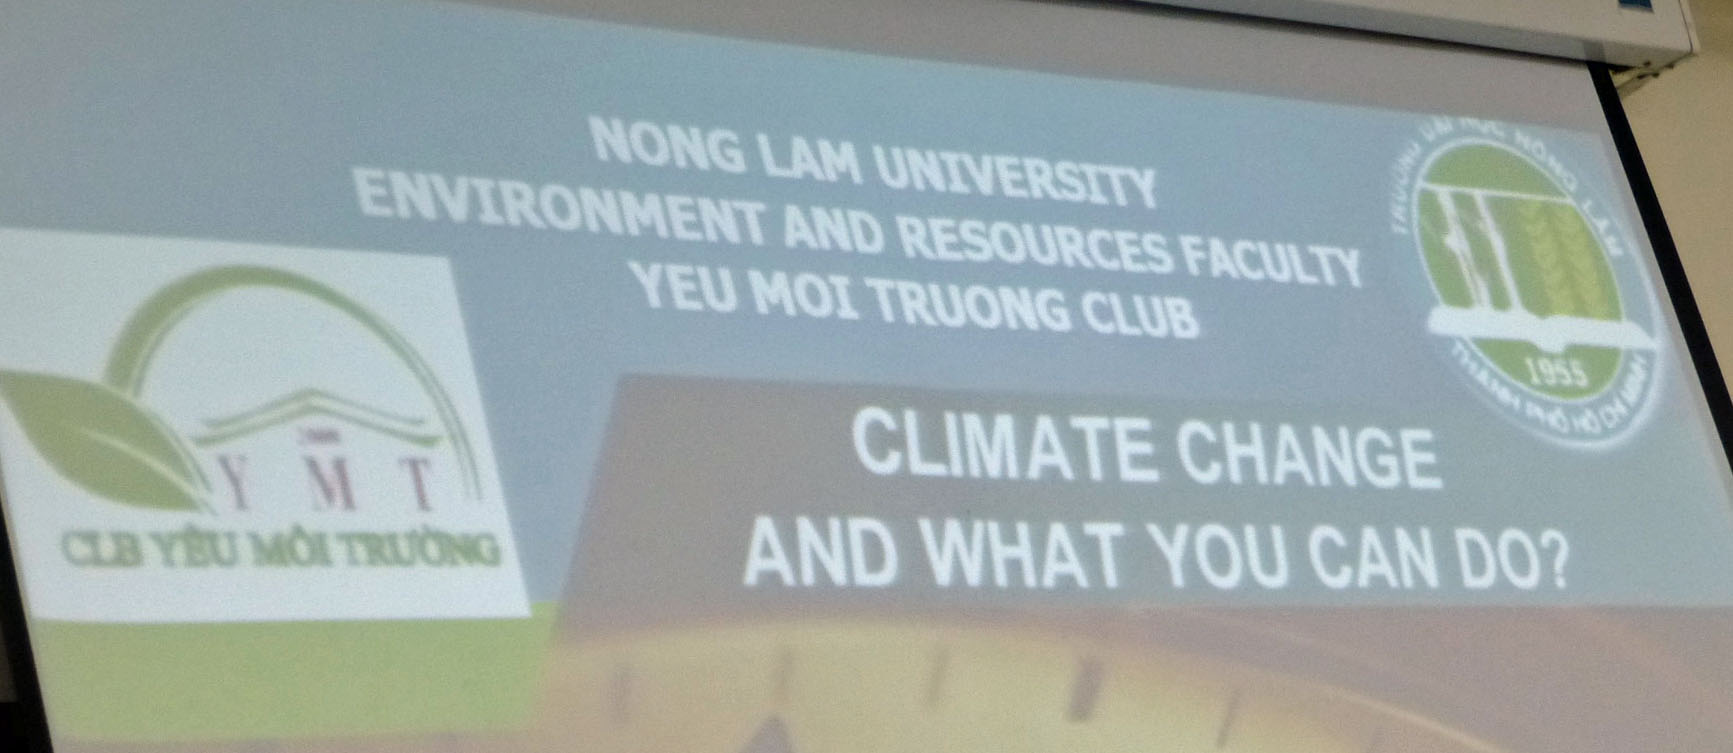 environmental challenges in vietnam essay What are some of biggest problems with higher education in vietnam originally answered: what are some of the biggest problems with higher education in vietnam.